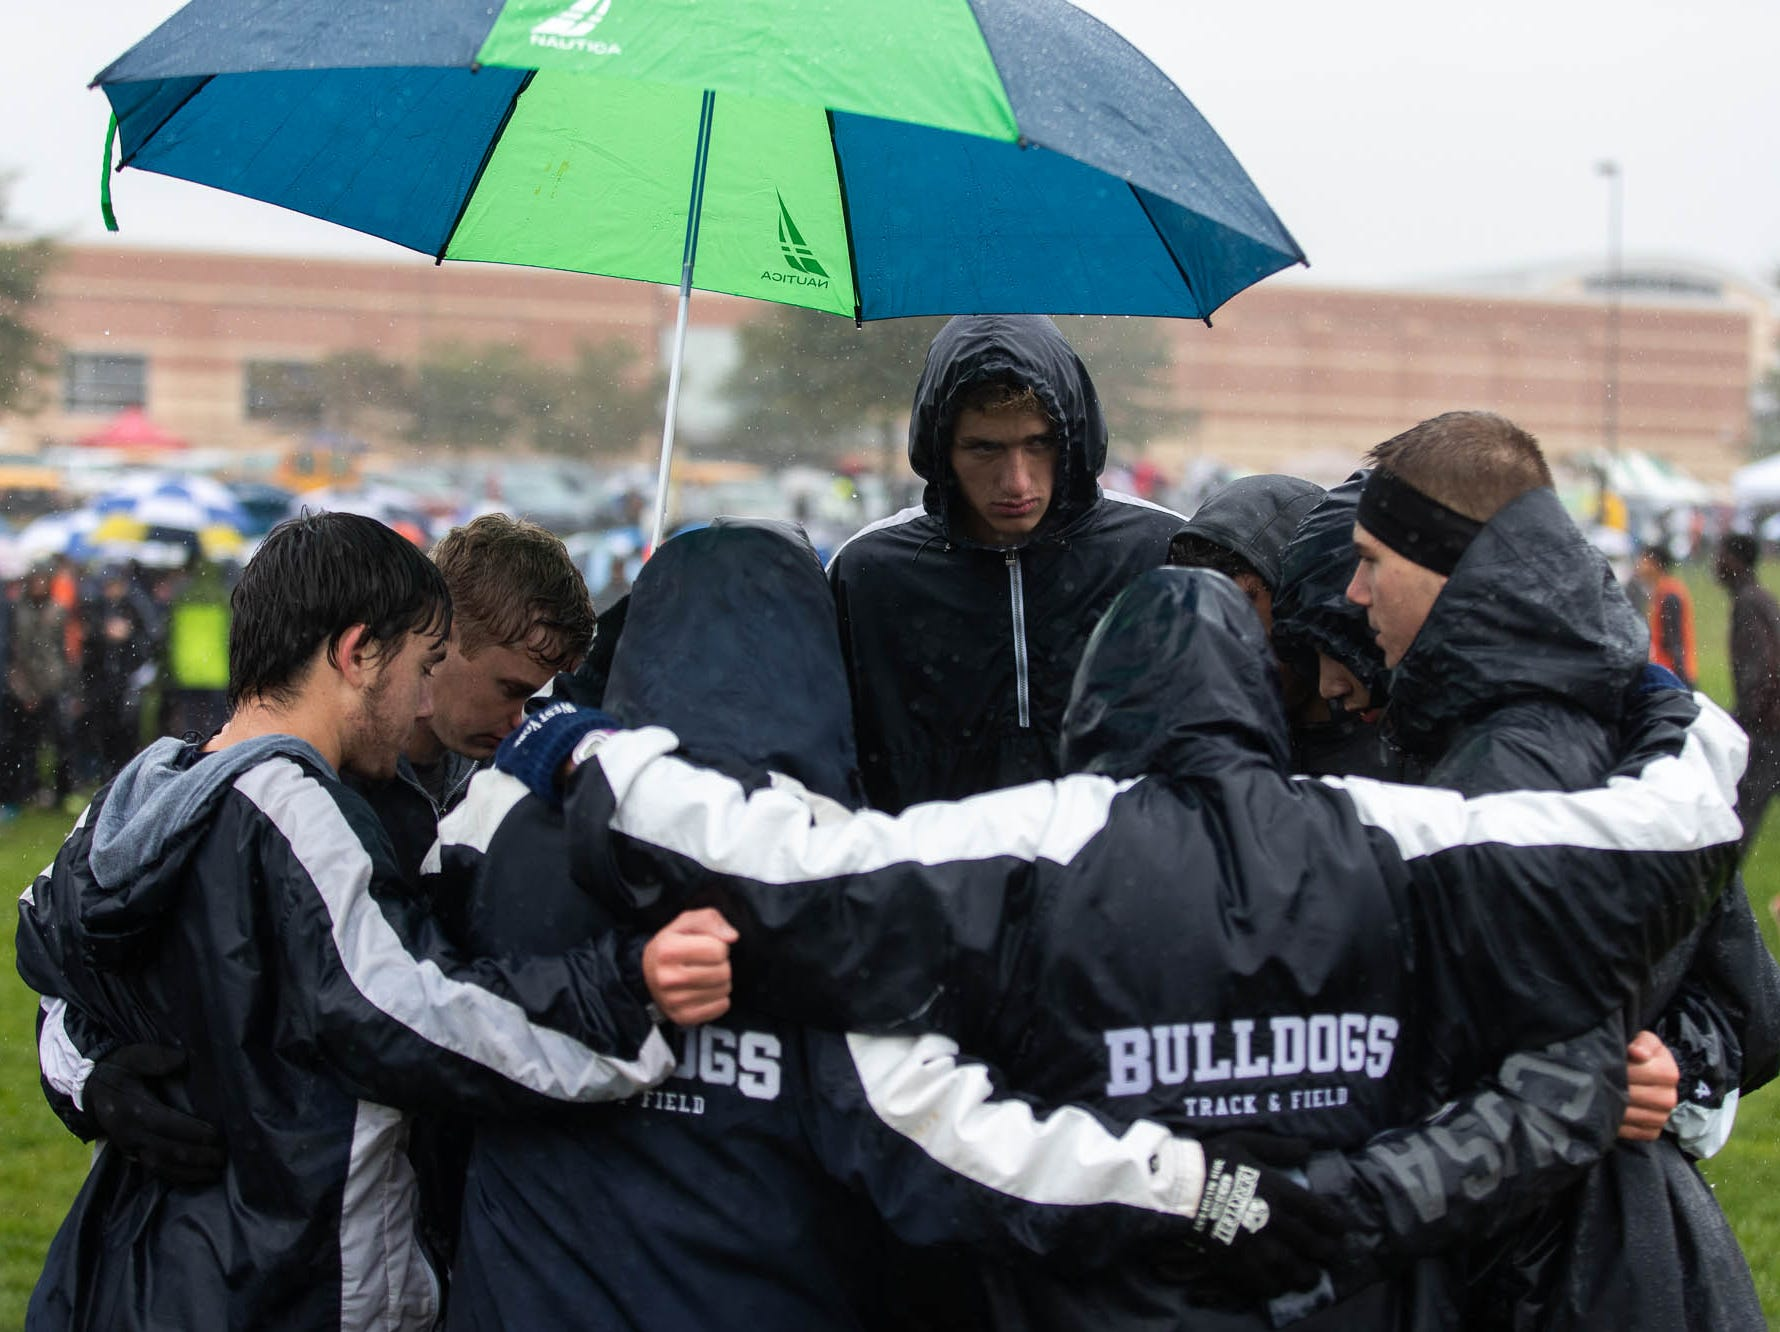 Members of the West York Boys AA team take a moment before their race during the PIAA District III Cross Country Championship, Saturday, Oct. 27, 2018, at Big Spring High School in Newville.